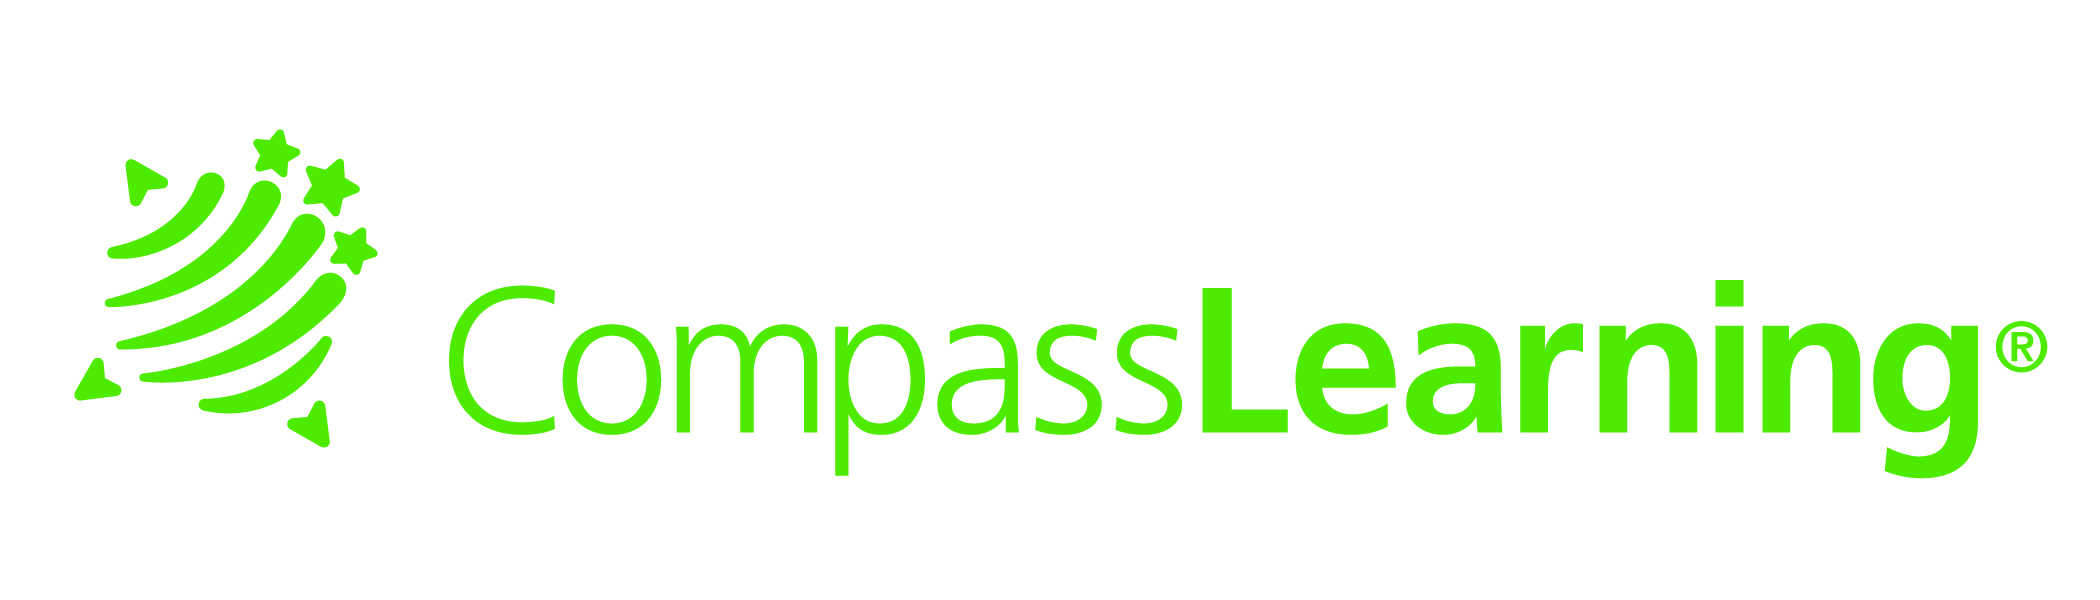 CompassLearning, Inc.